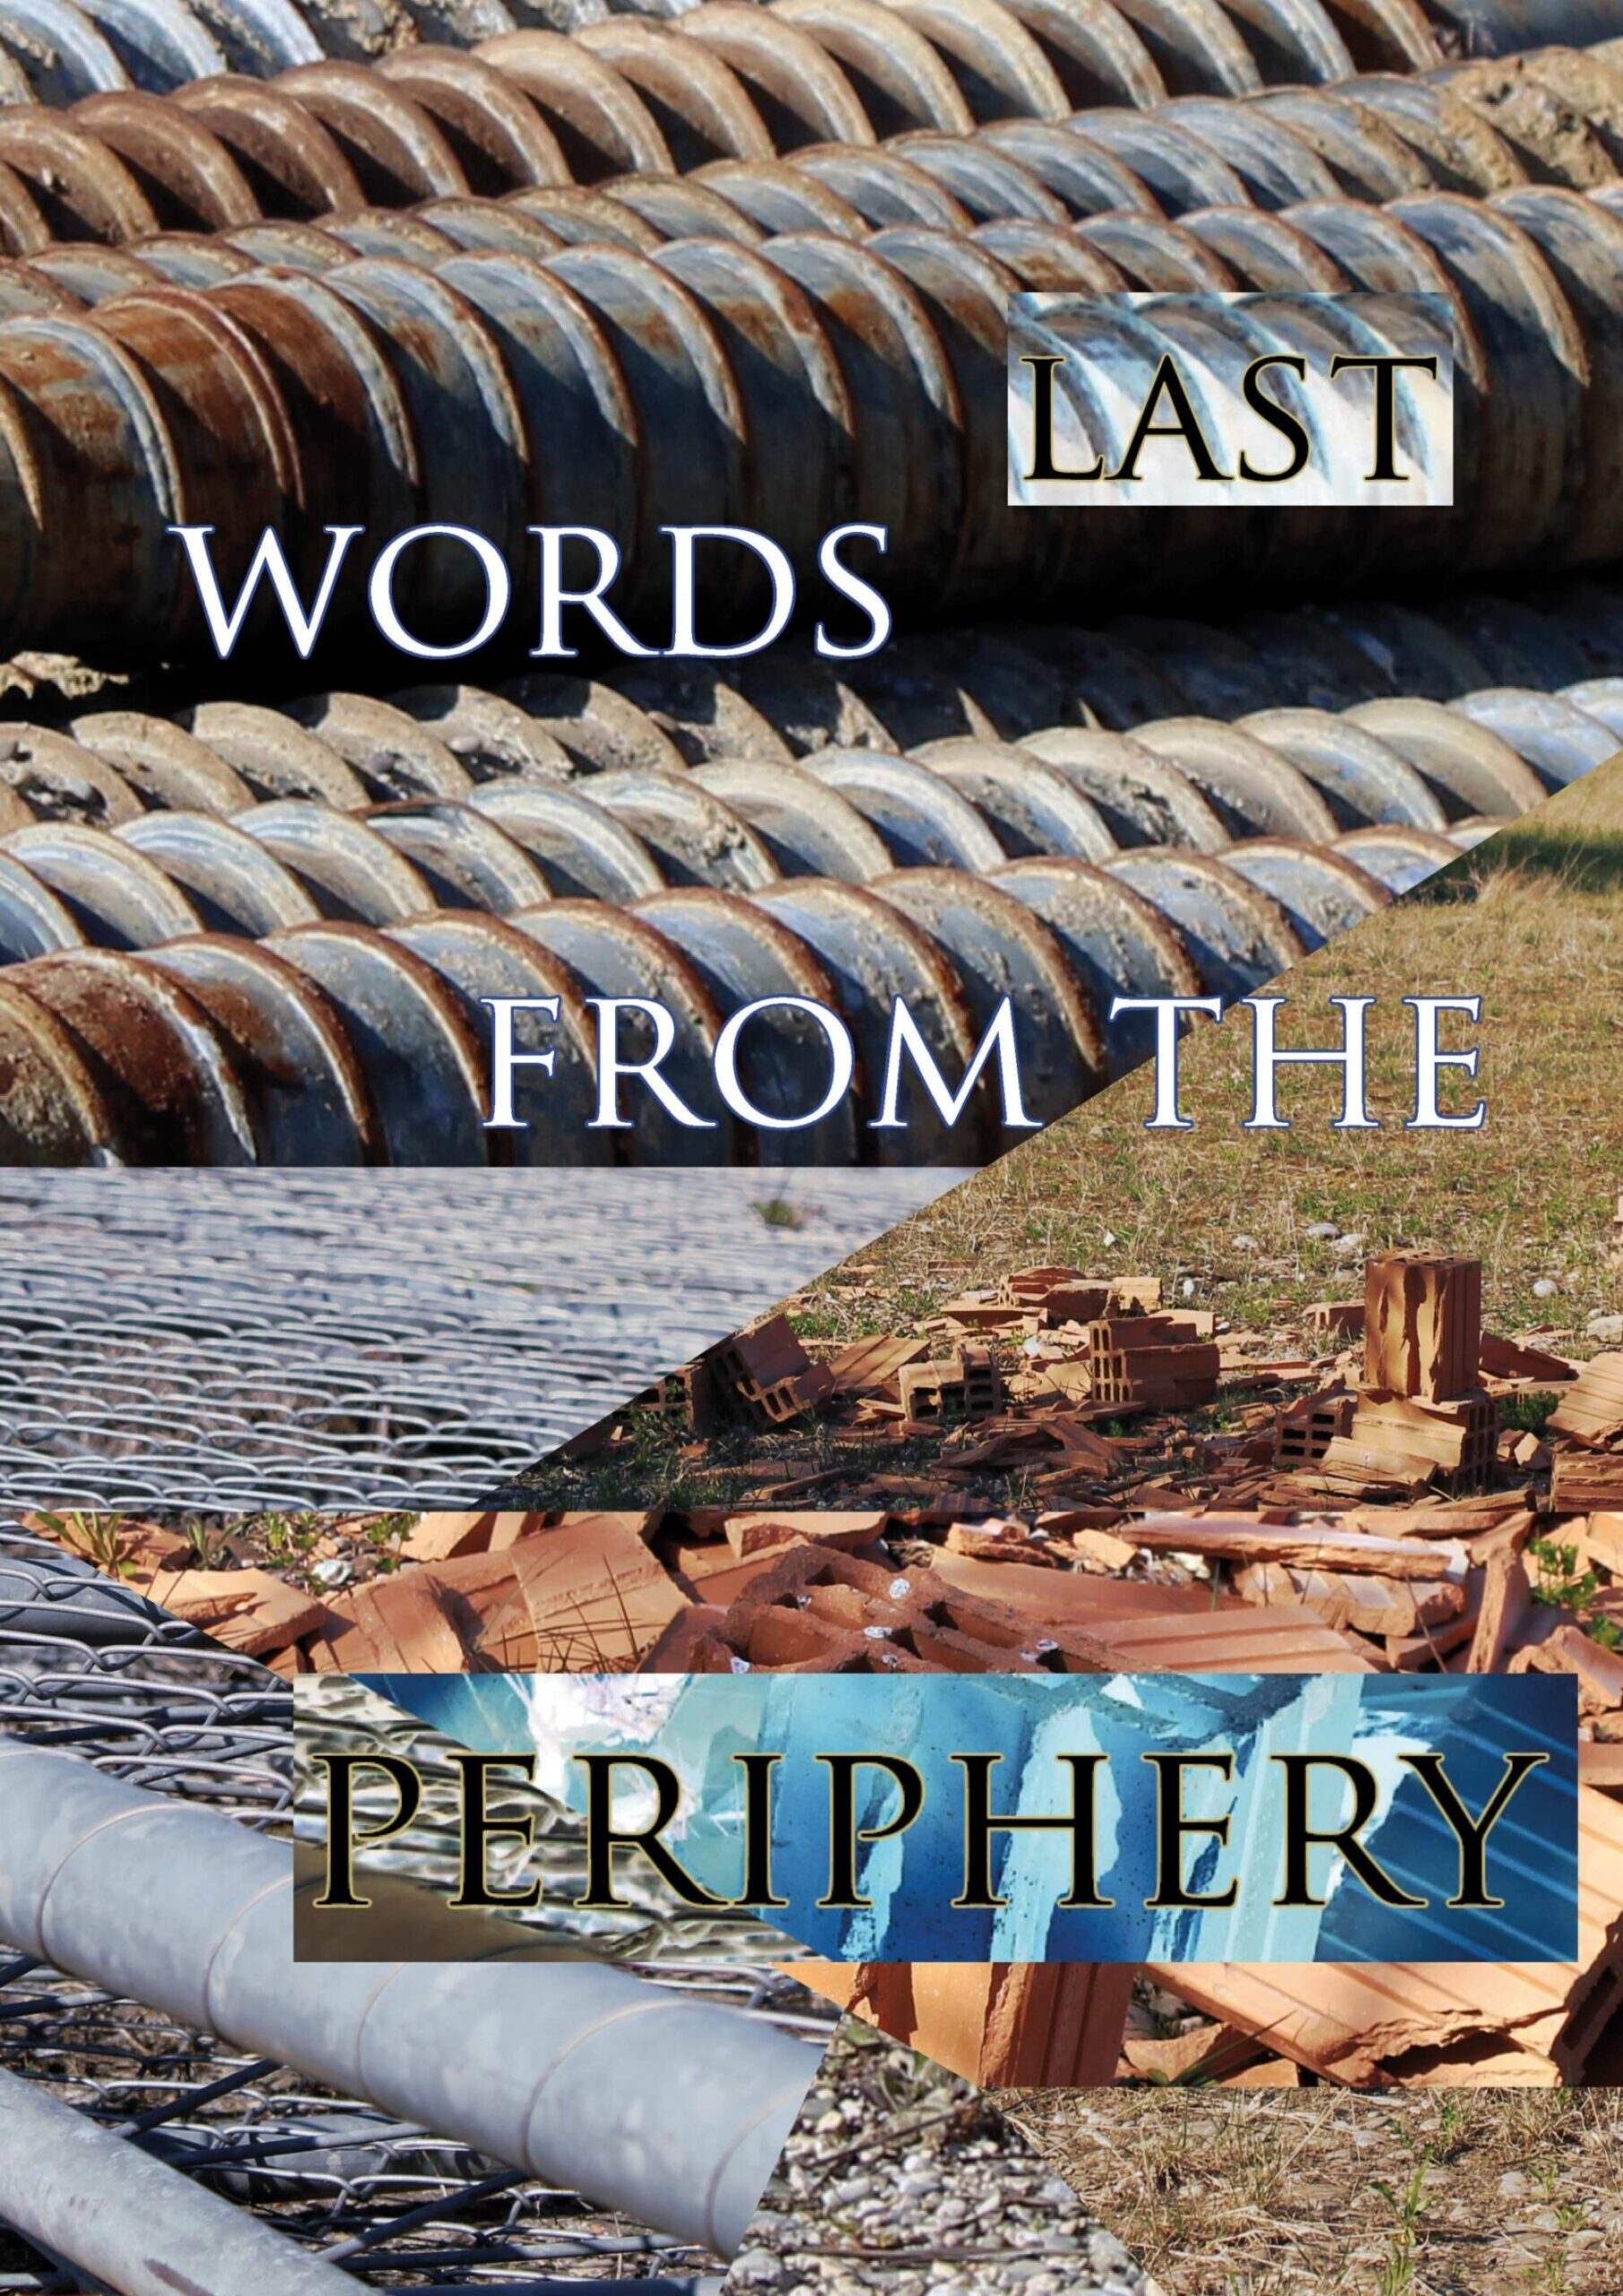 @theoff.space - last words from the periphery